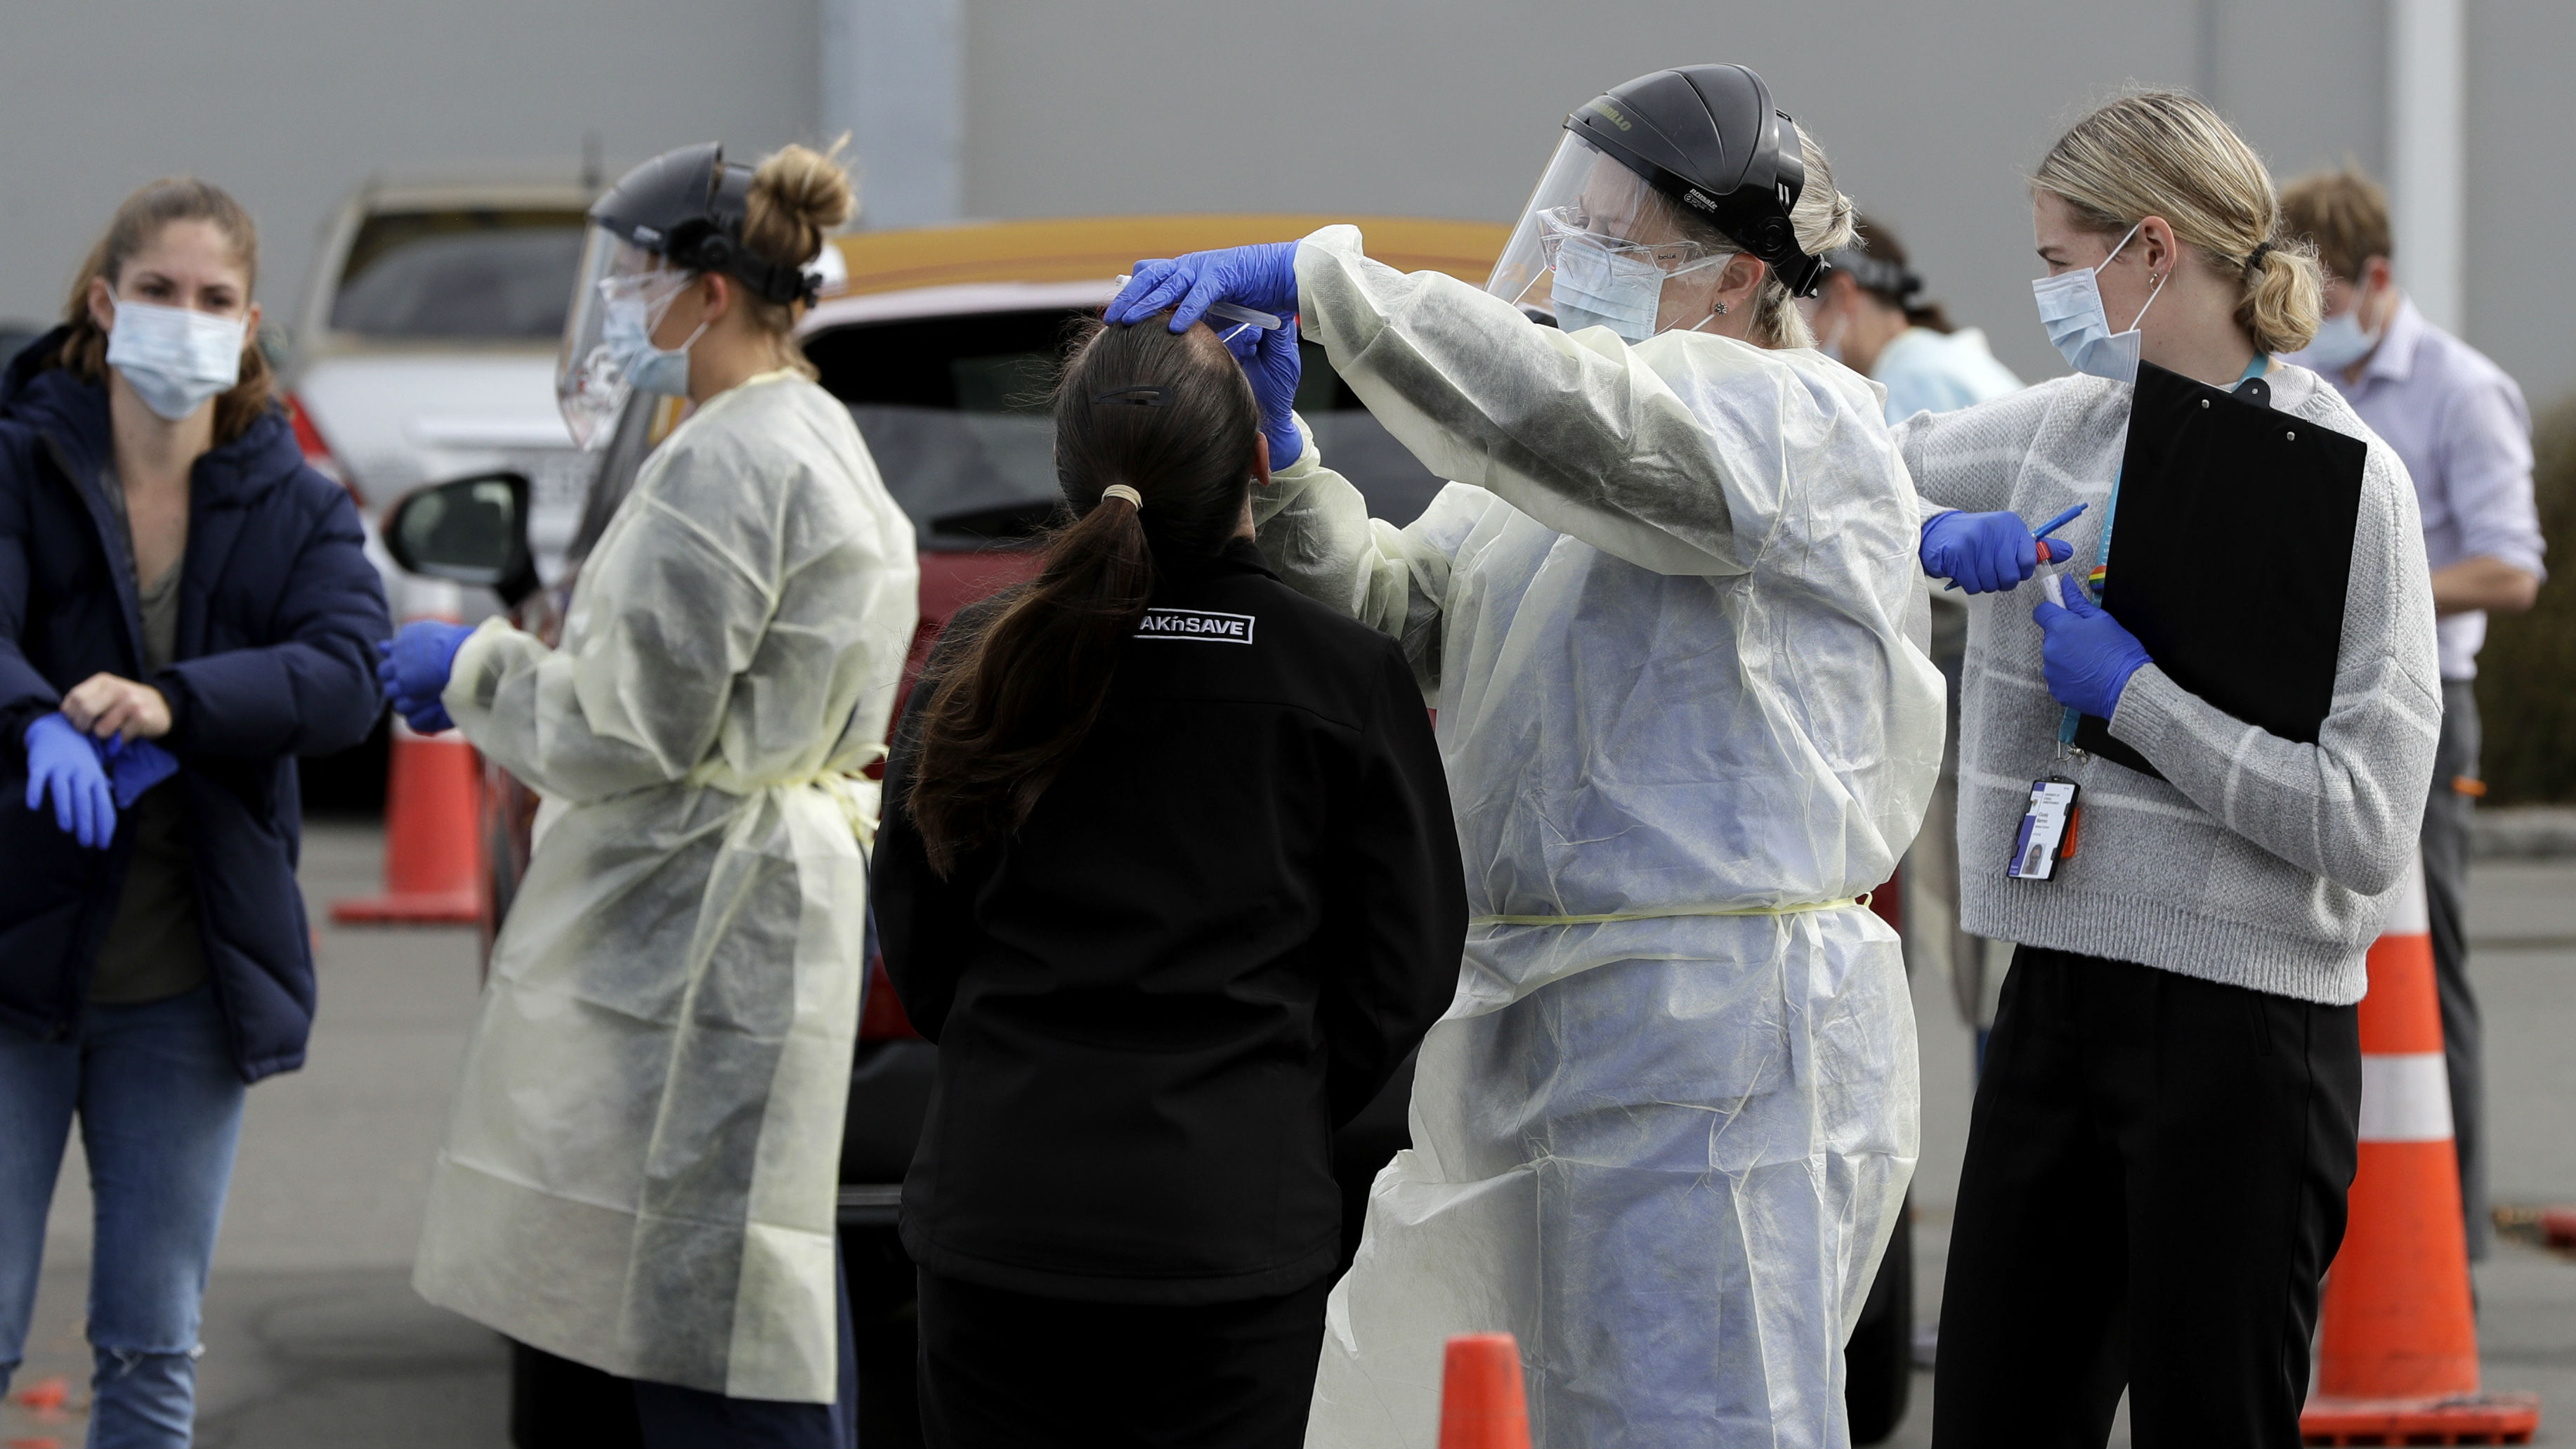 New Zealand records first community case of COVID-19 in months